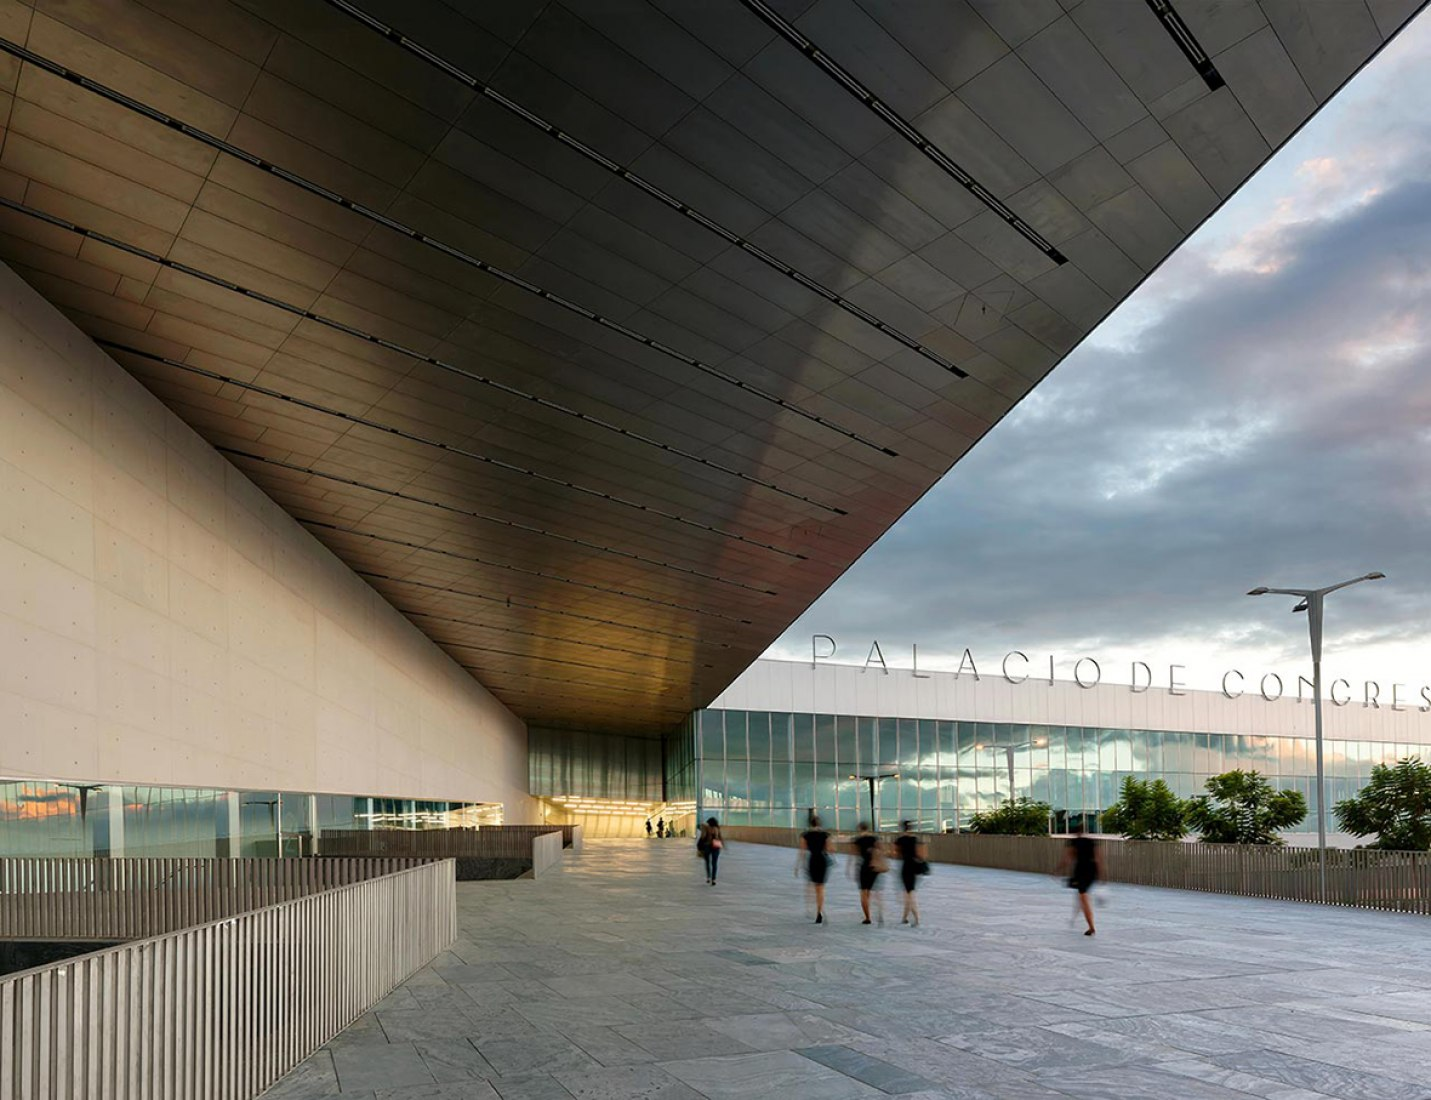 Seville Convention Center by Guillermo Vázquez Consuegra. Image courtesy of La Fabrica.